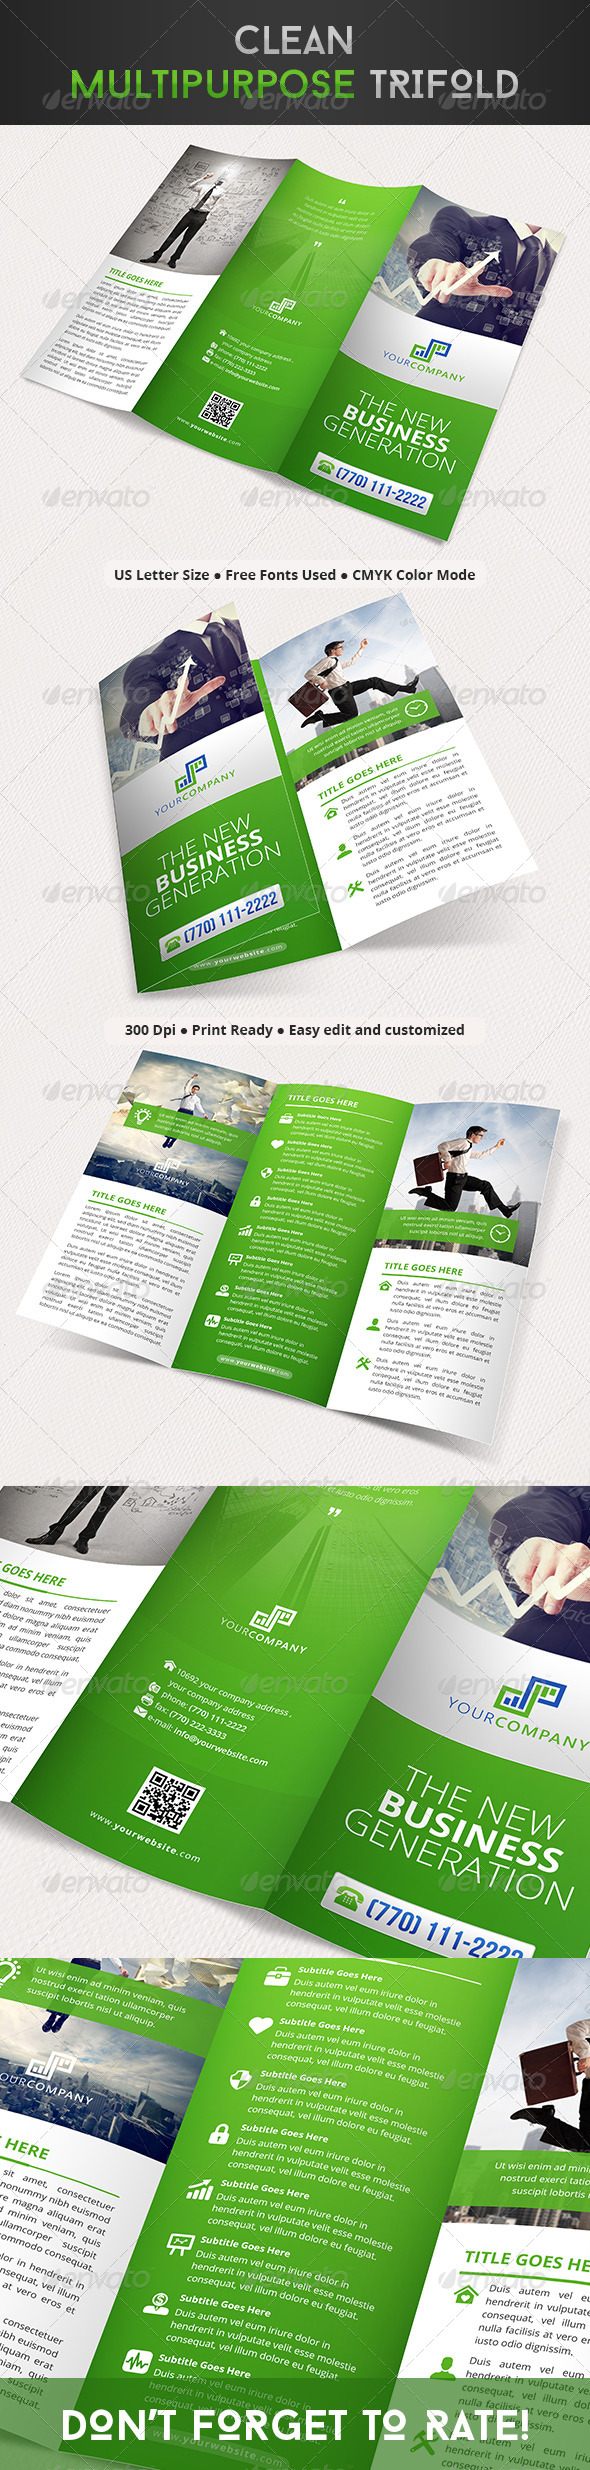 GraphicRiver Clean Multipurpose Trifold 8129897